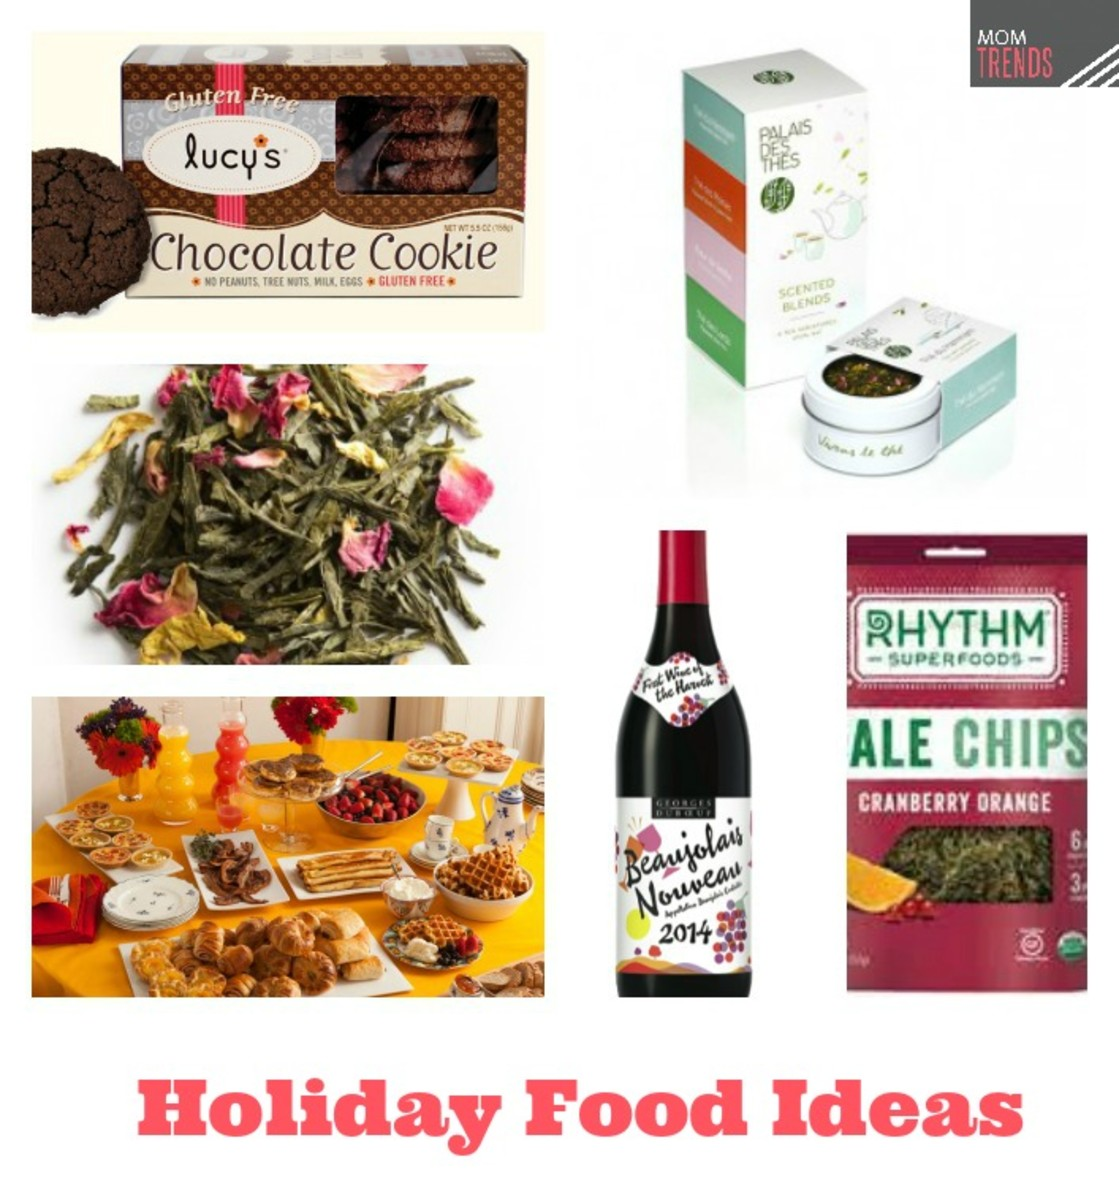 Holiday Snack, Food and Drink Ideas